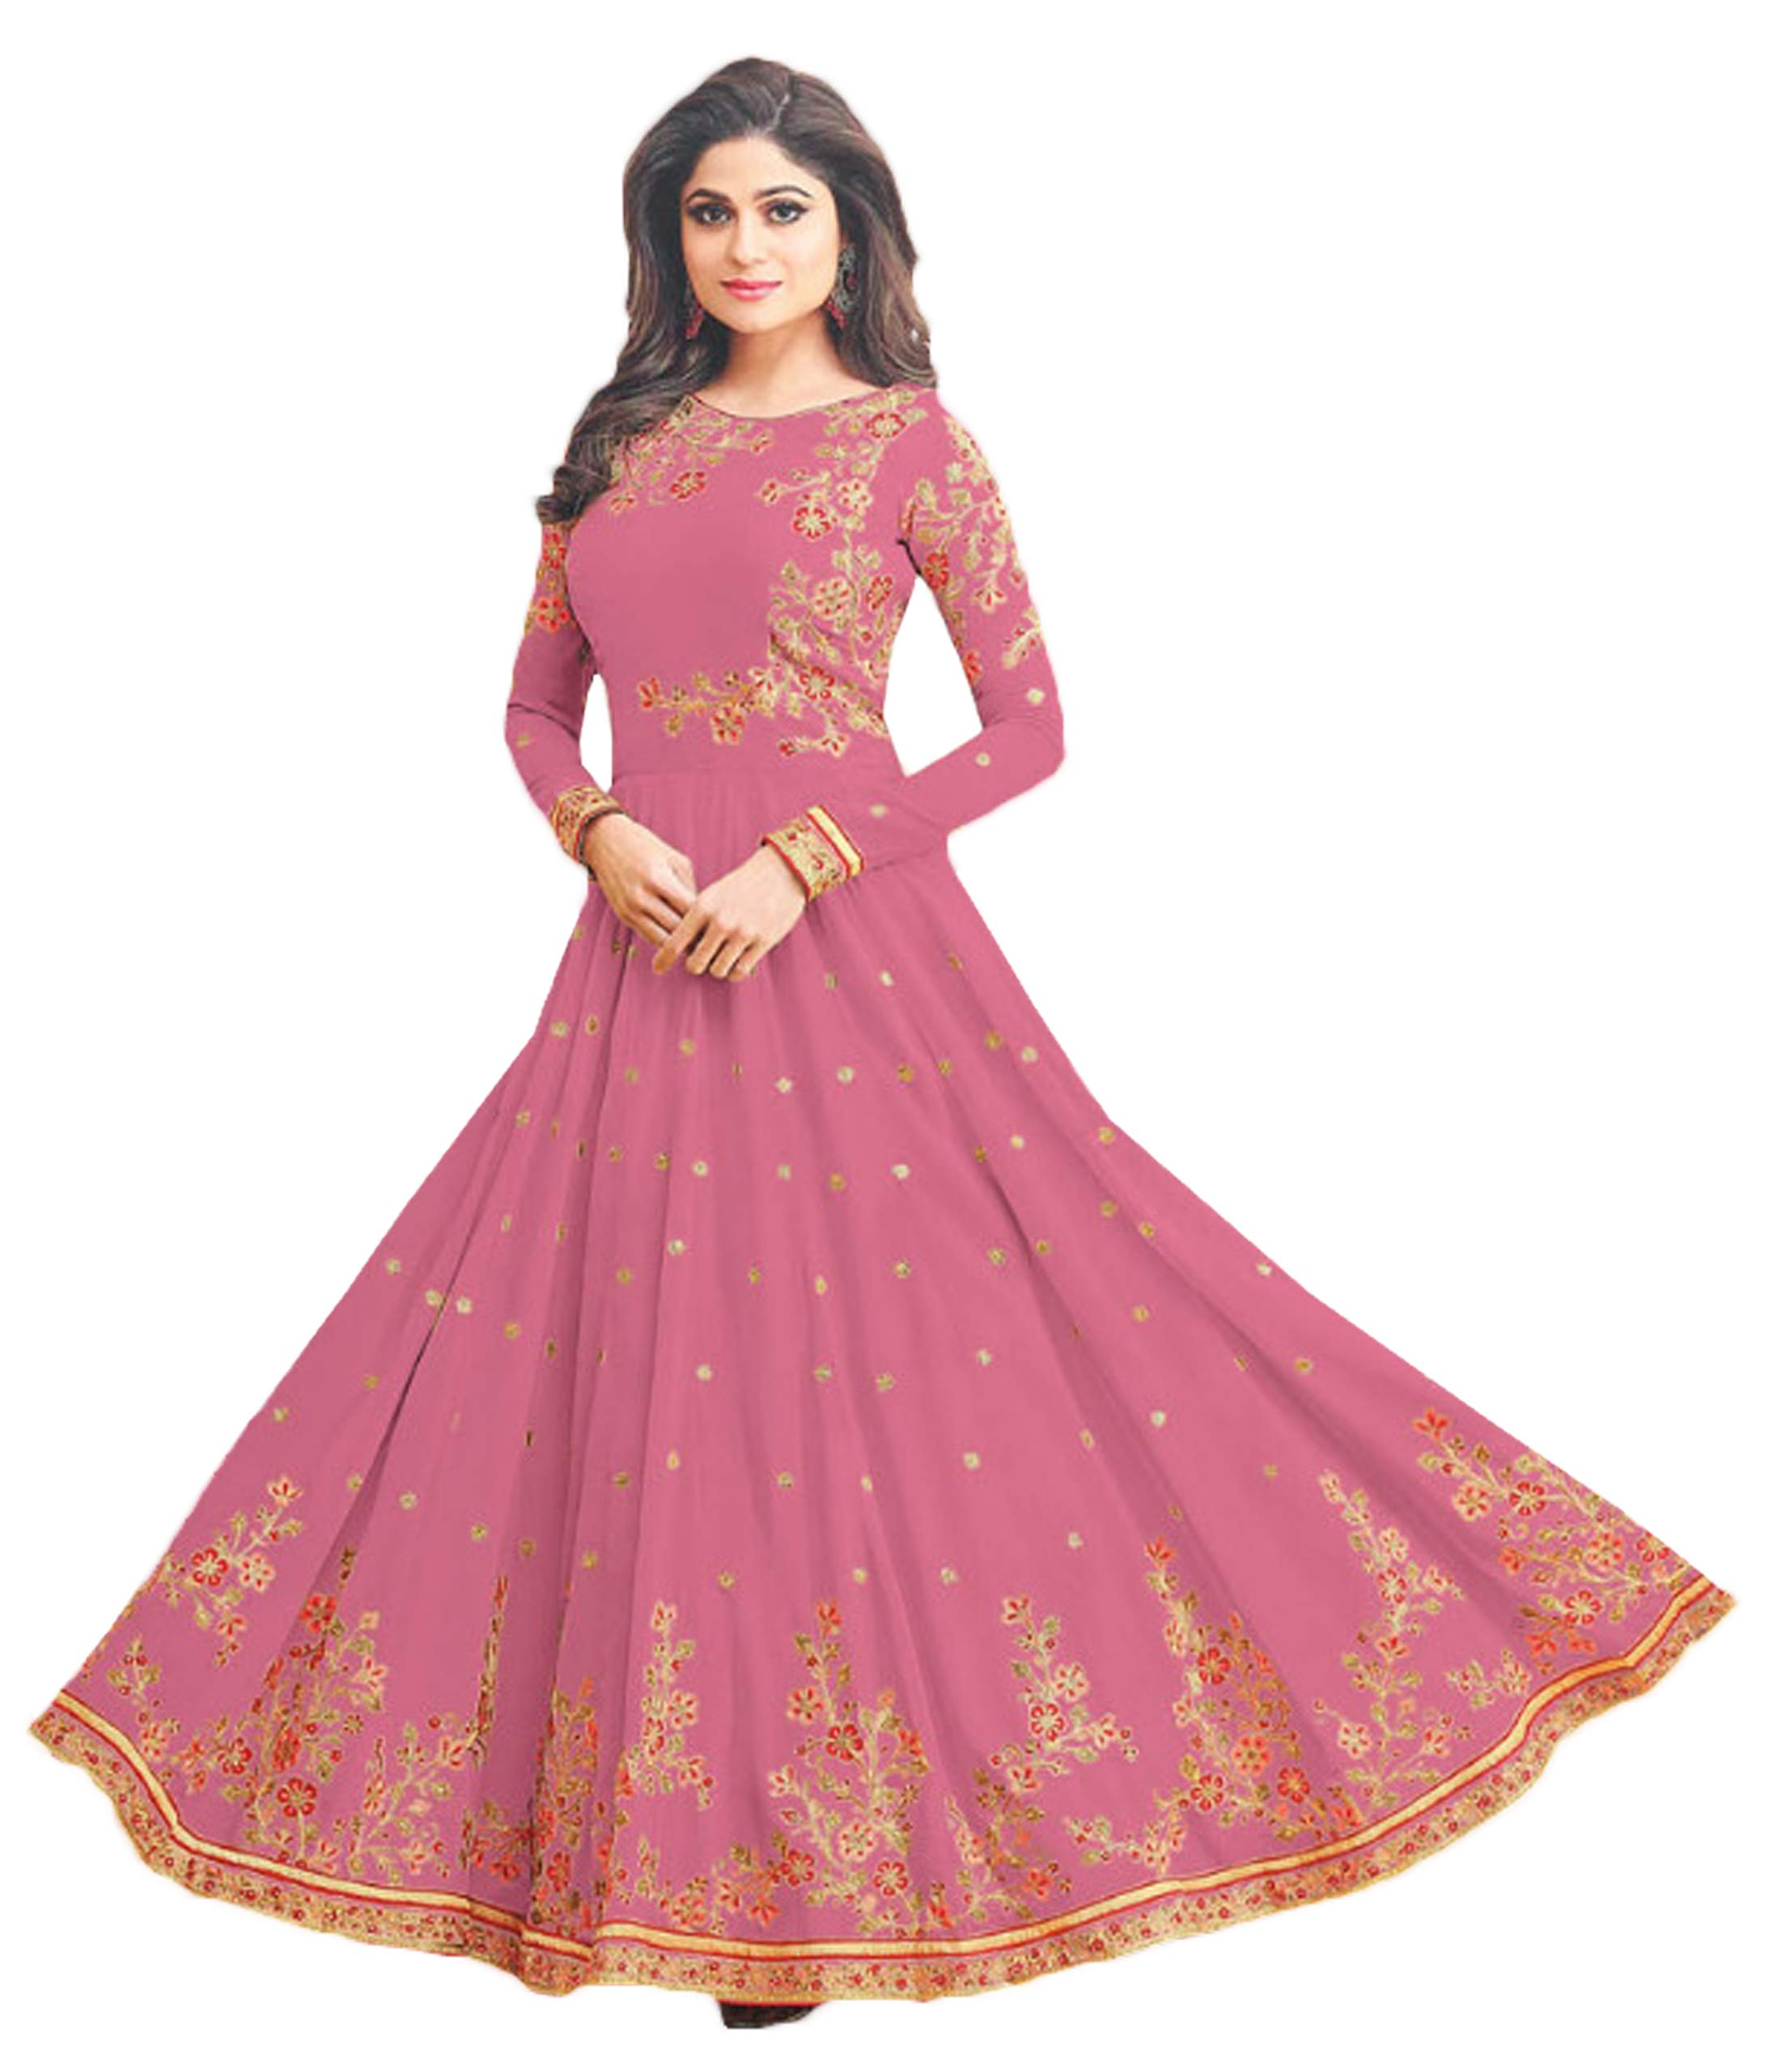 22082952a ... Embroidery Georgette Semi-Stitched Anarkali Salwar Kameez (Pink  Color